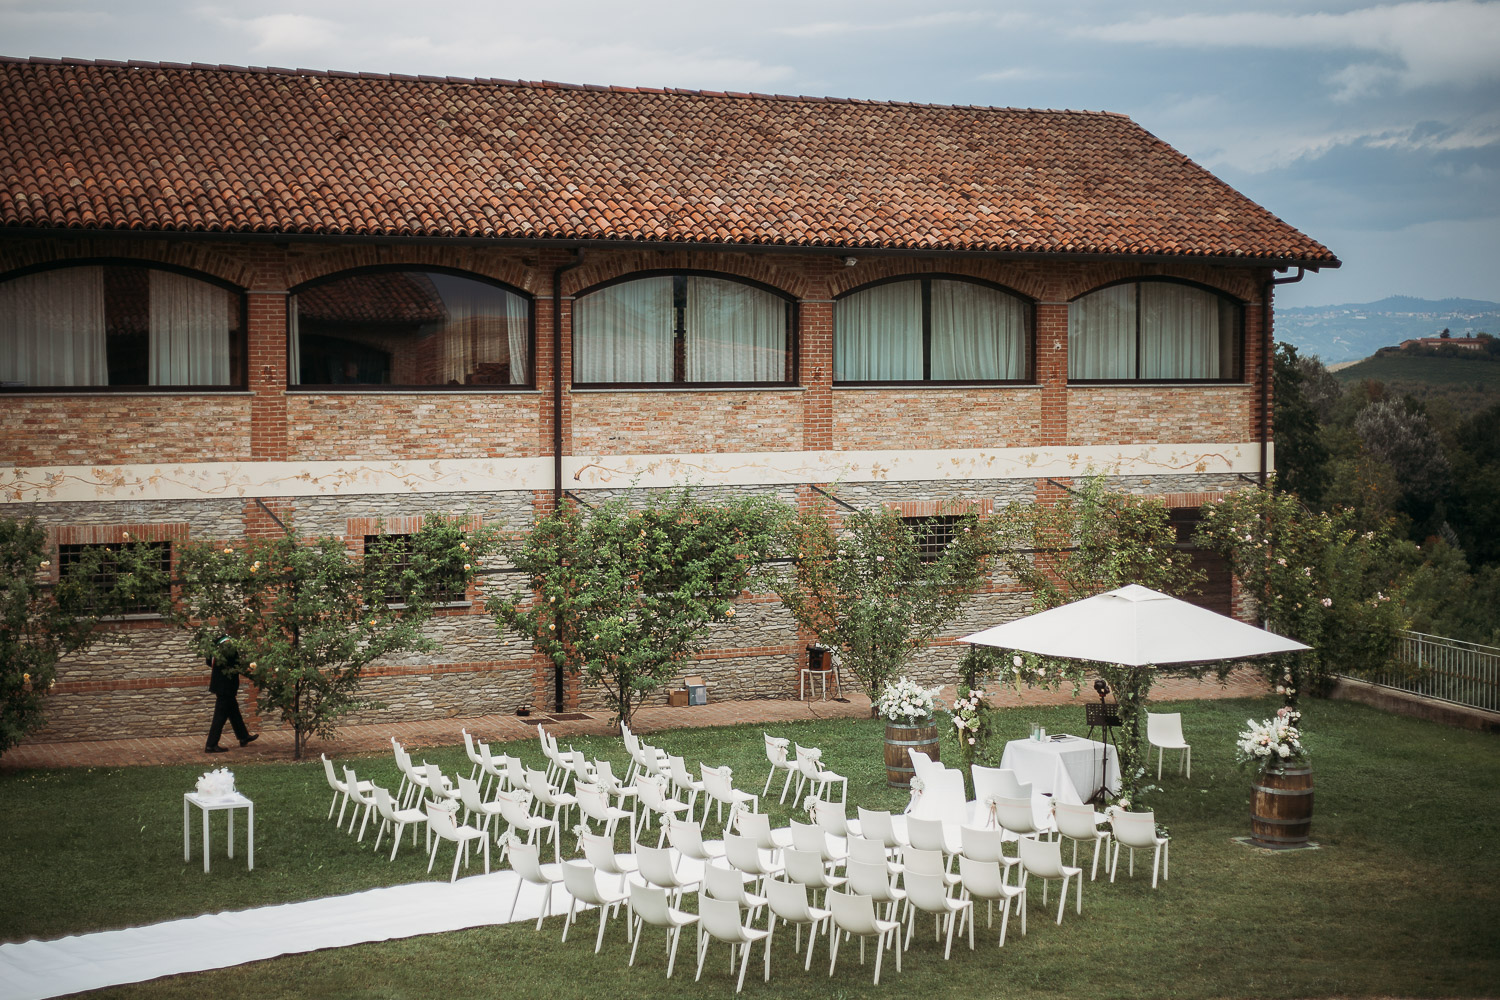 Civil ceremony setting at Tenuta Carretta in Piobesi d'Alba